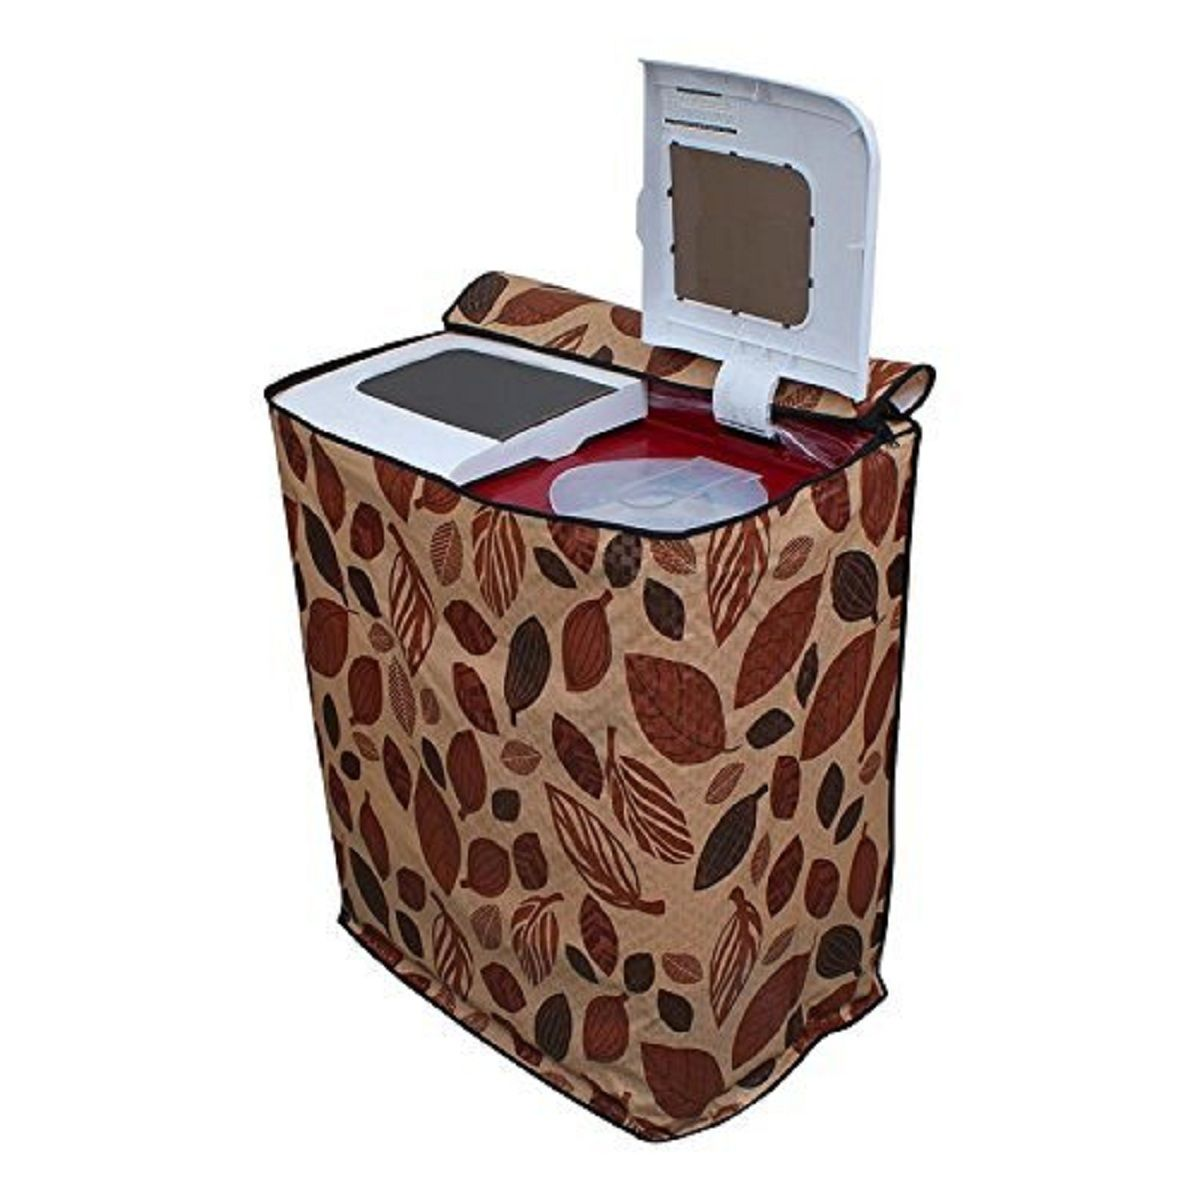 Kuber Industries™ Semi Automatic Washing Machine Cover In Leaf Design Brown Color (Suitable For 6 kg, 6.5 kg, 7 kg, 7.5 kg, )